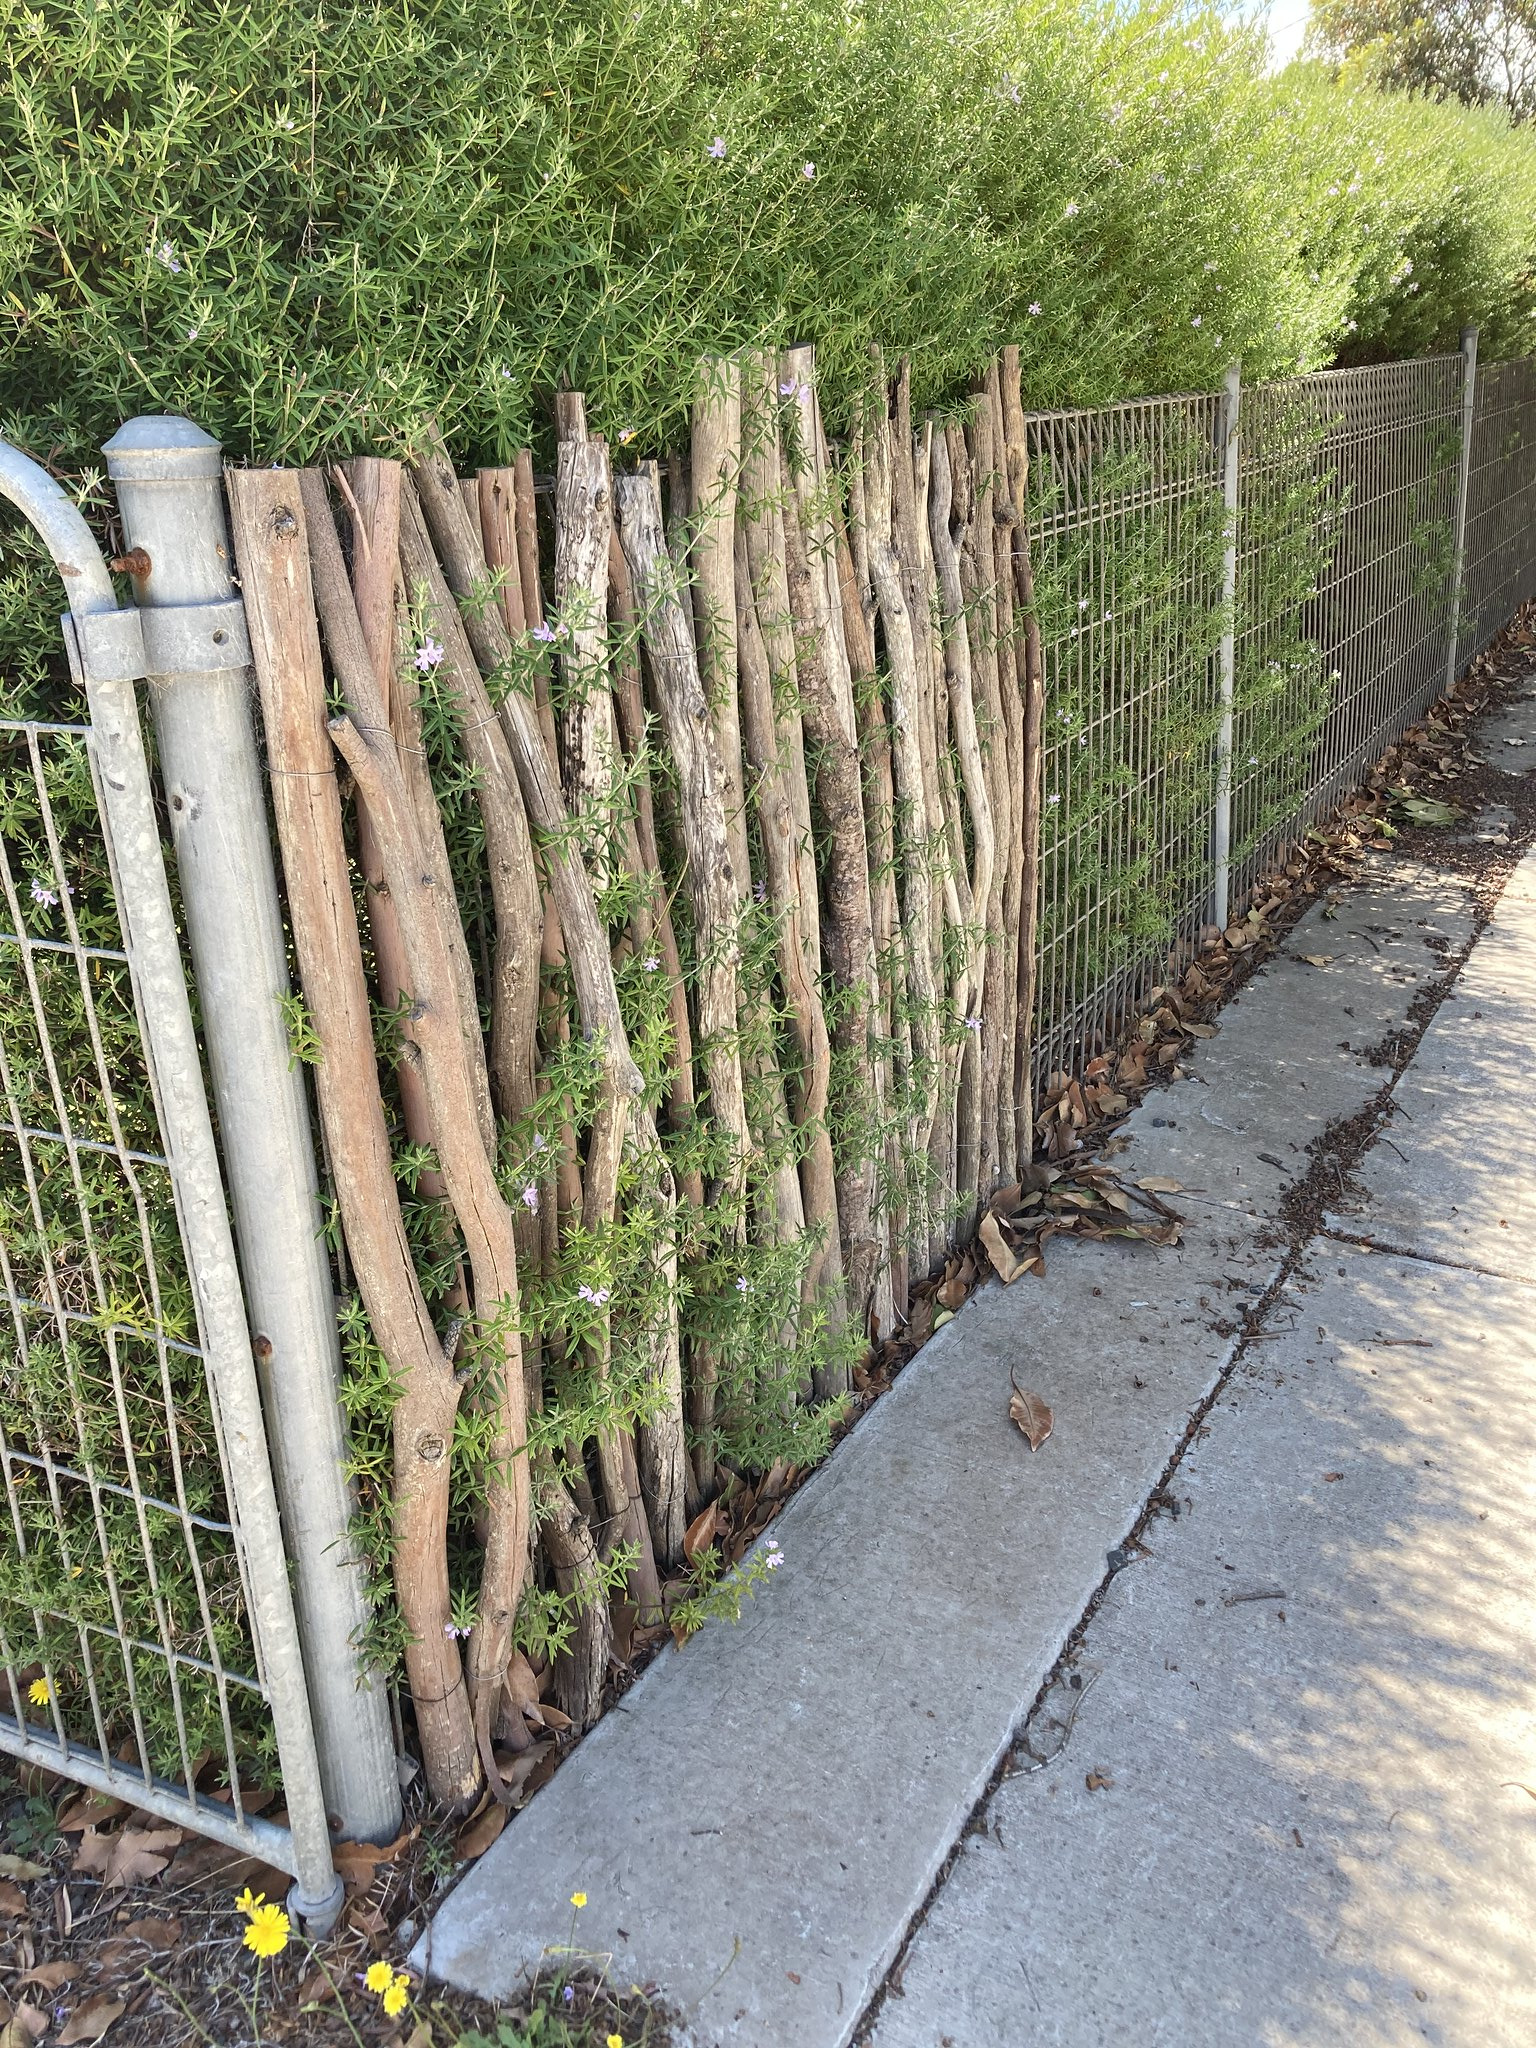 a metal fence, with a tall wystringia hedge behind it, beginning to be covered in upright sticks